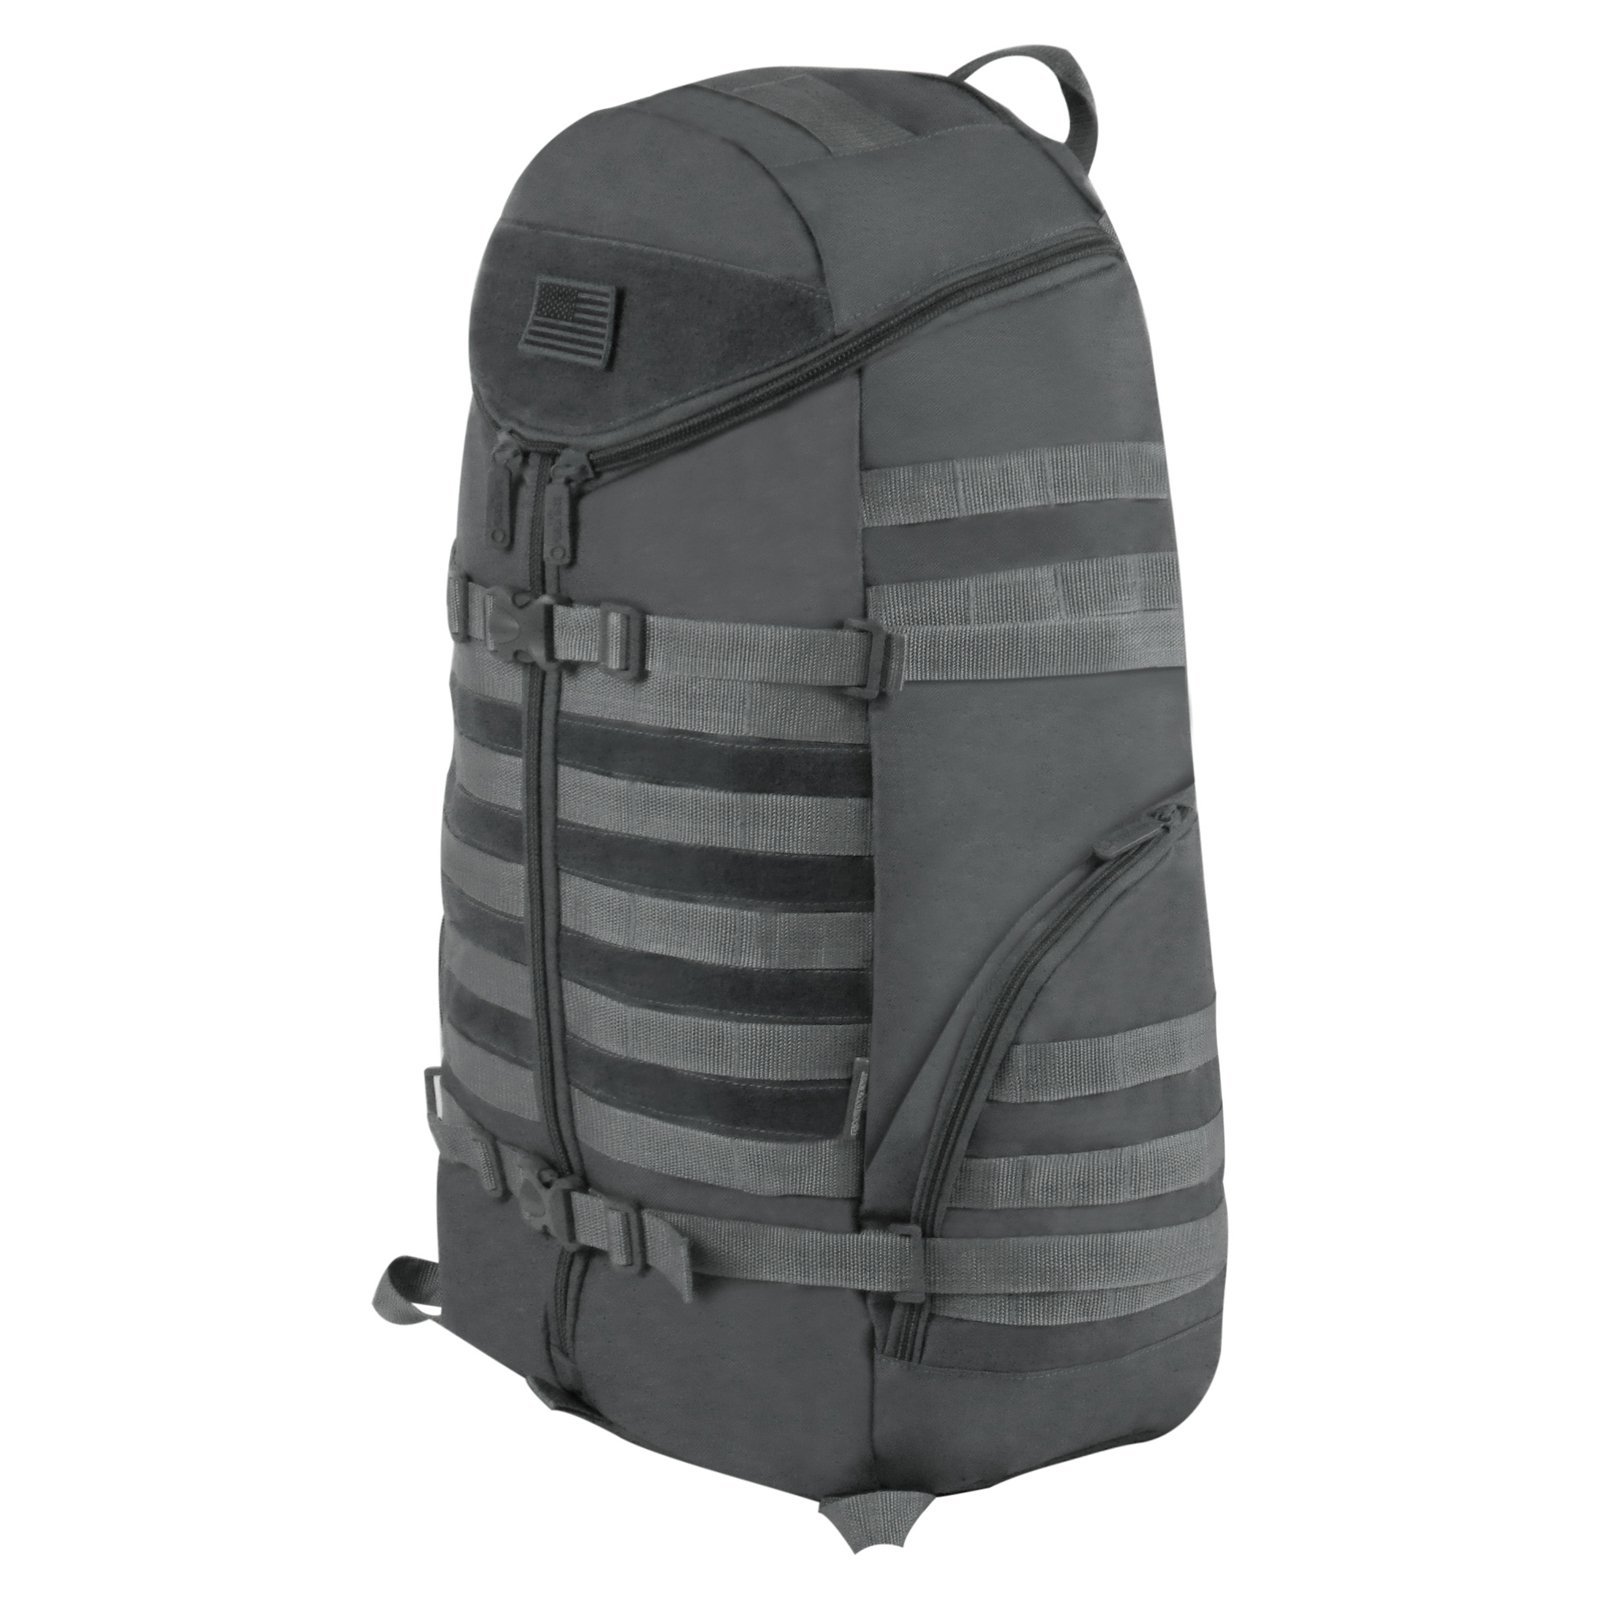 East West U.S.A. Tactical Molle TriZip Outdoor Backpack